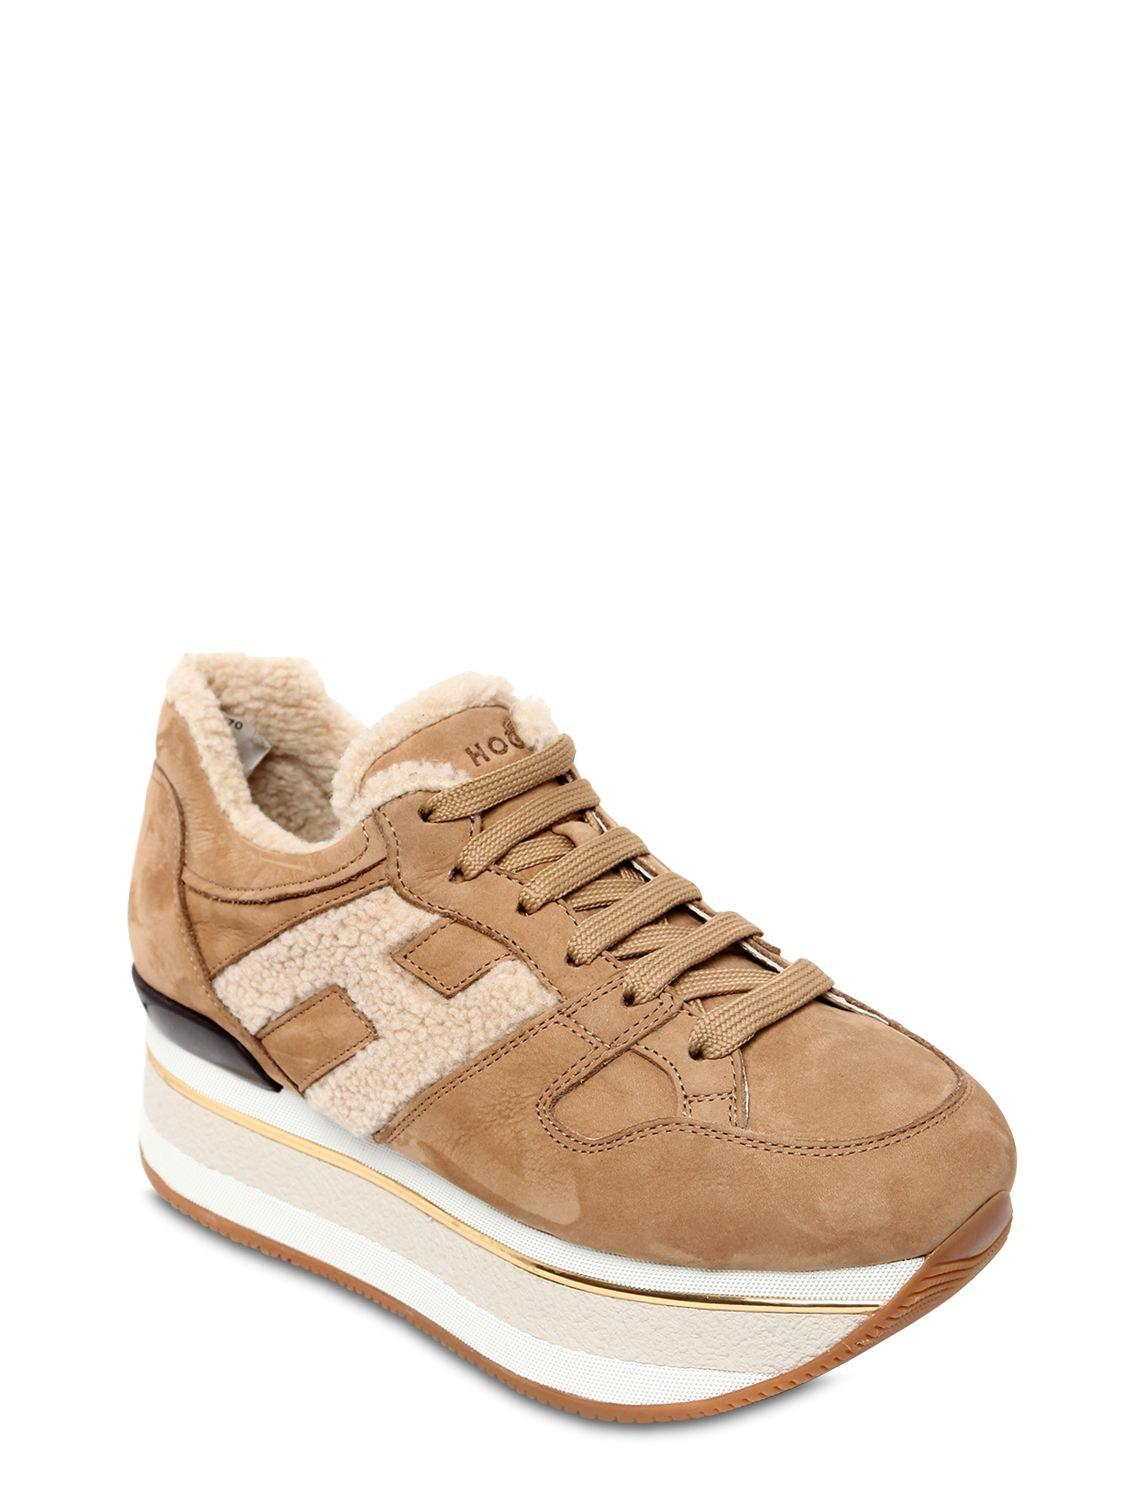 Hogan 70mm Maxi 222 Suede & Shearling Sneakers in Beige (Natural ...